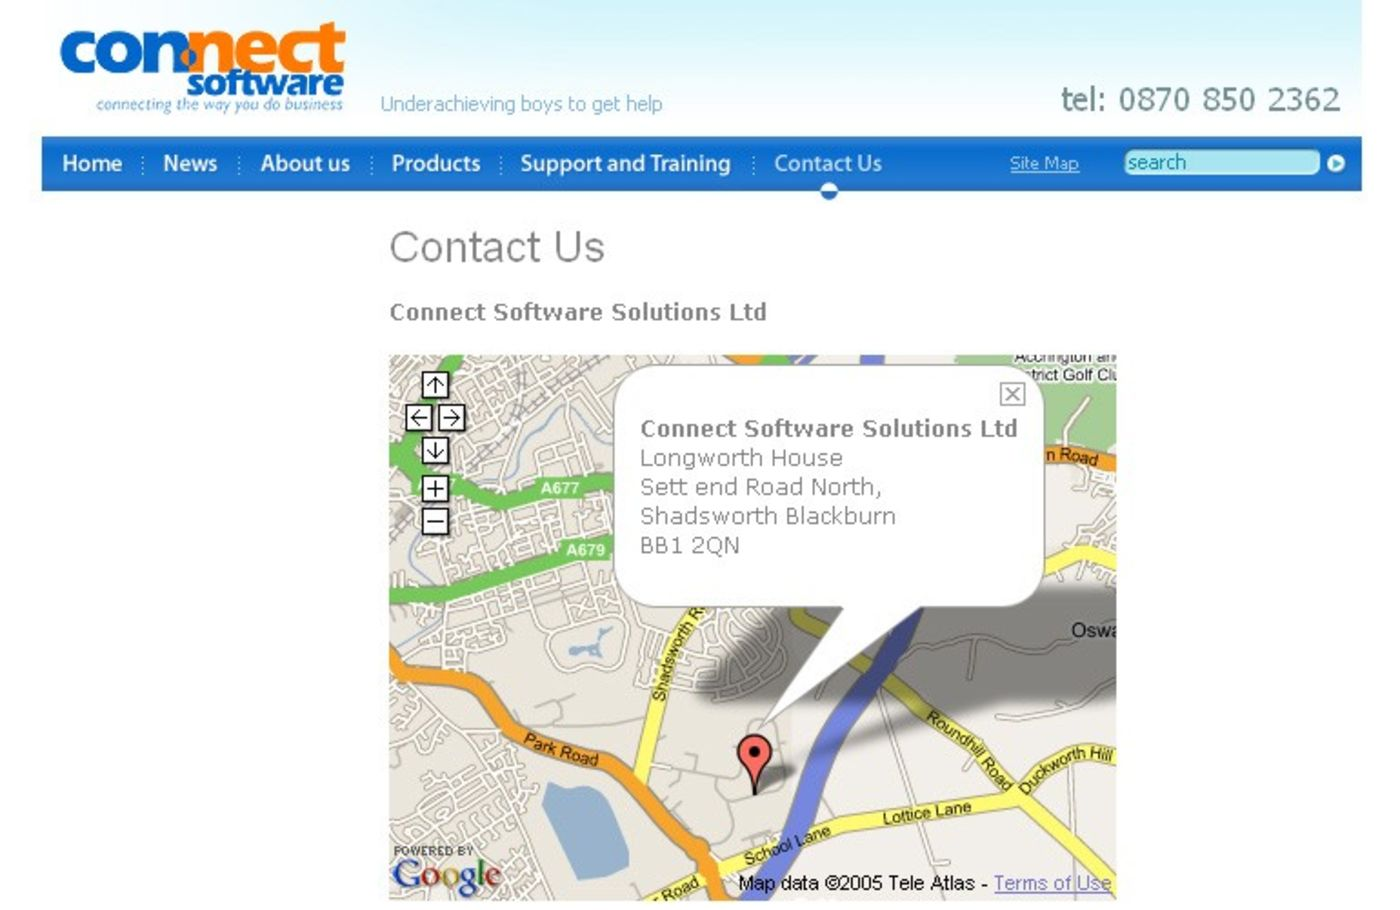 Connect Software Solutions Ltd Contact us page